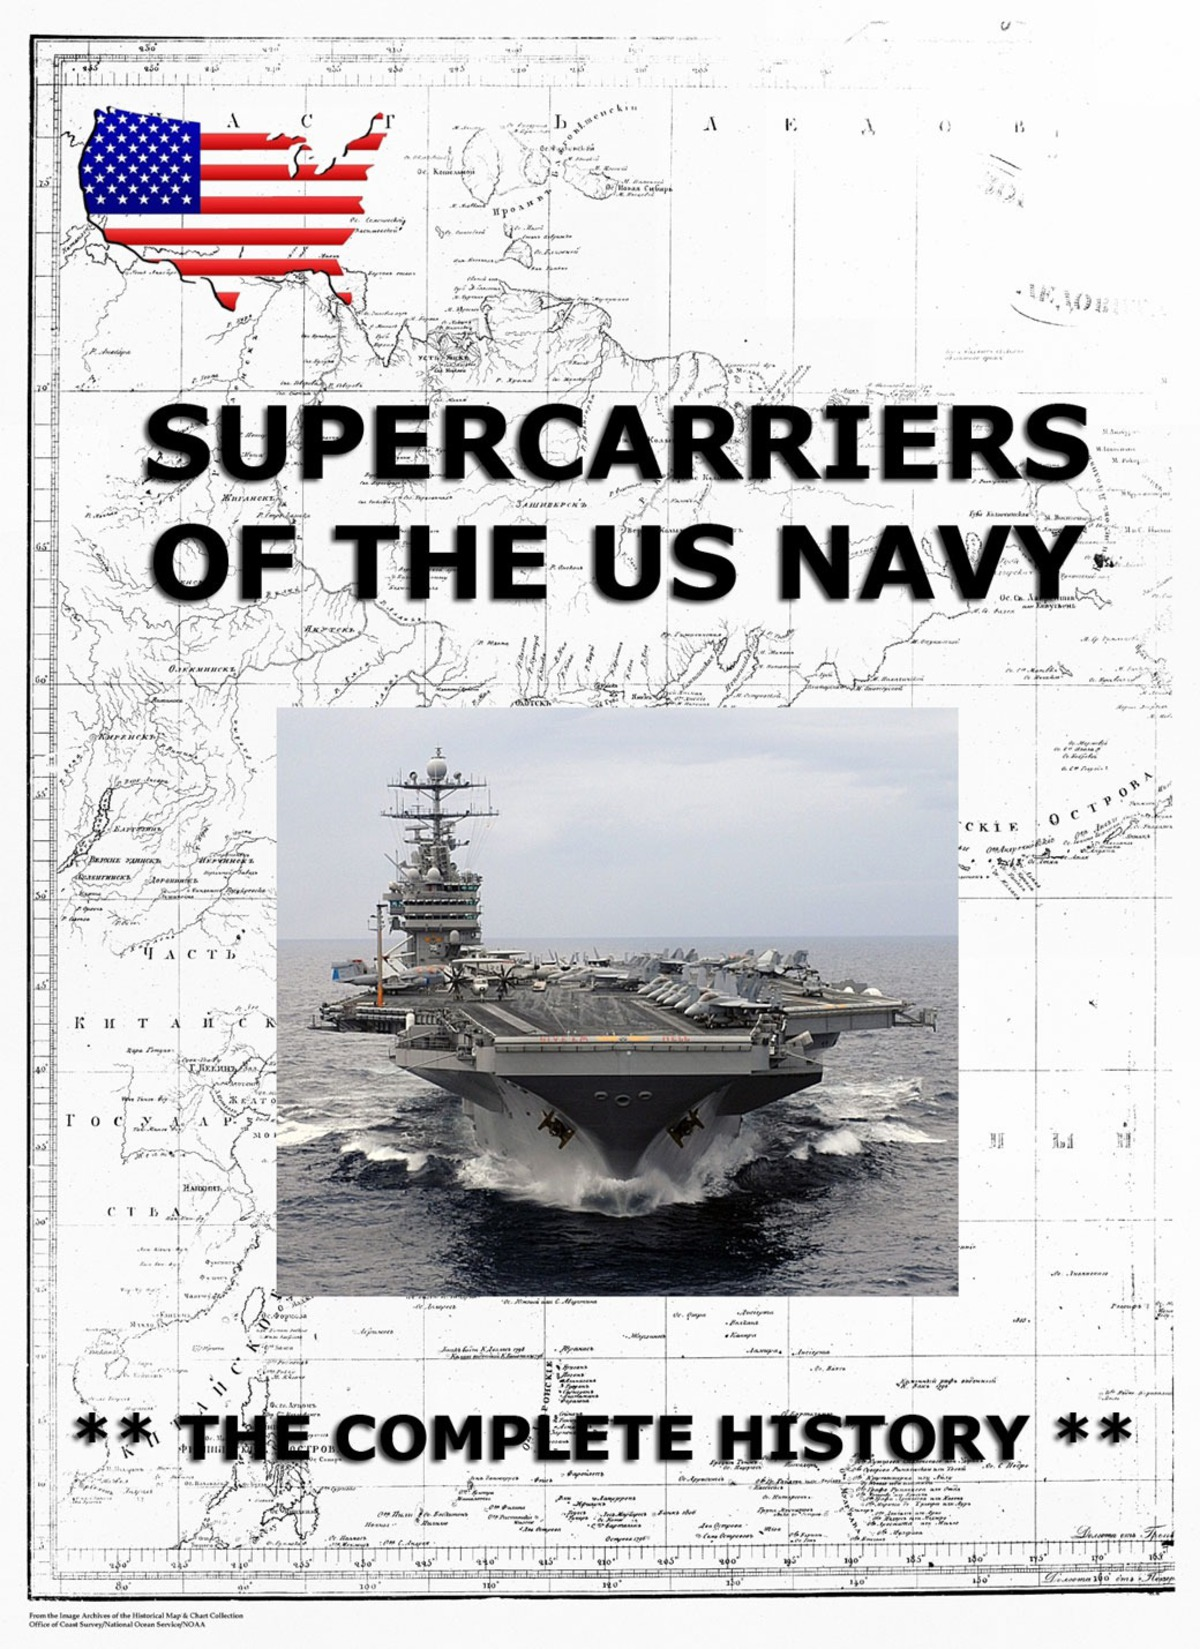 Supercarriers of the US Navy - The Complete History